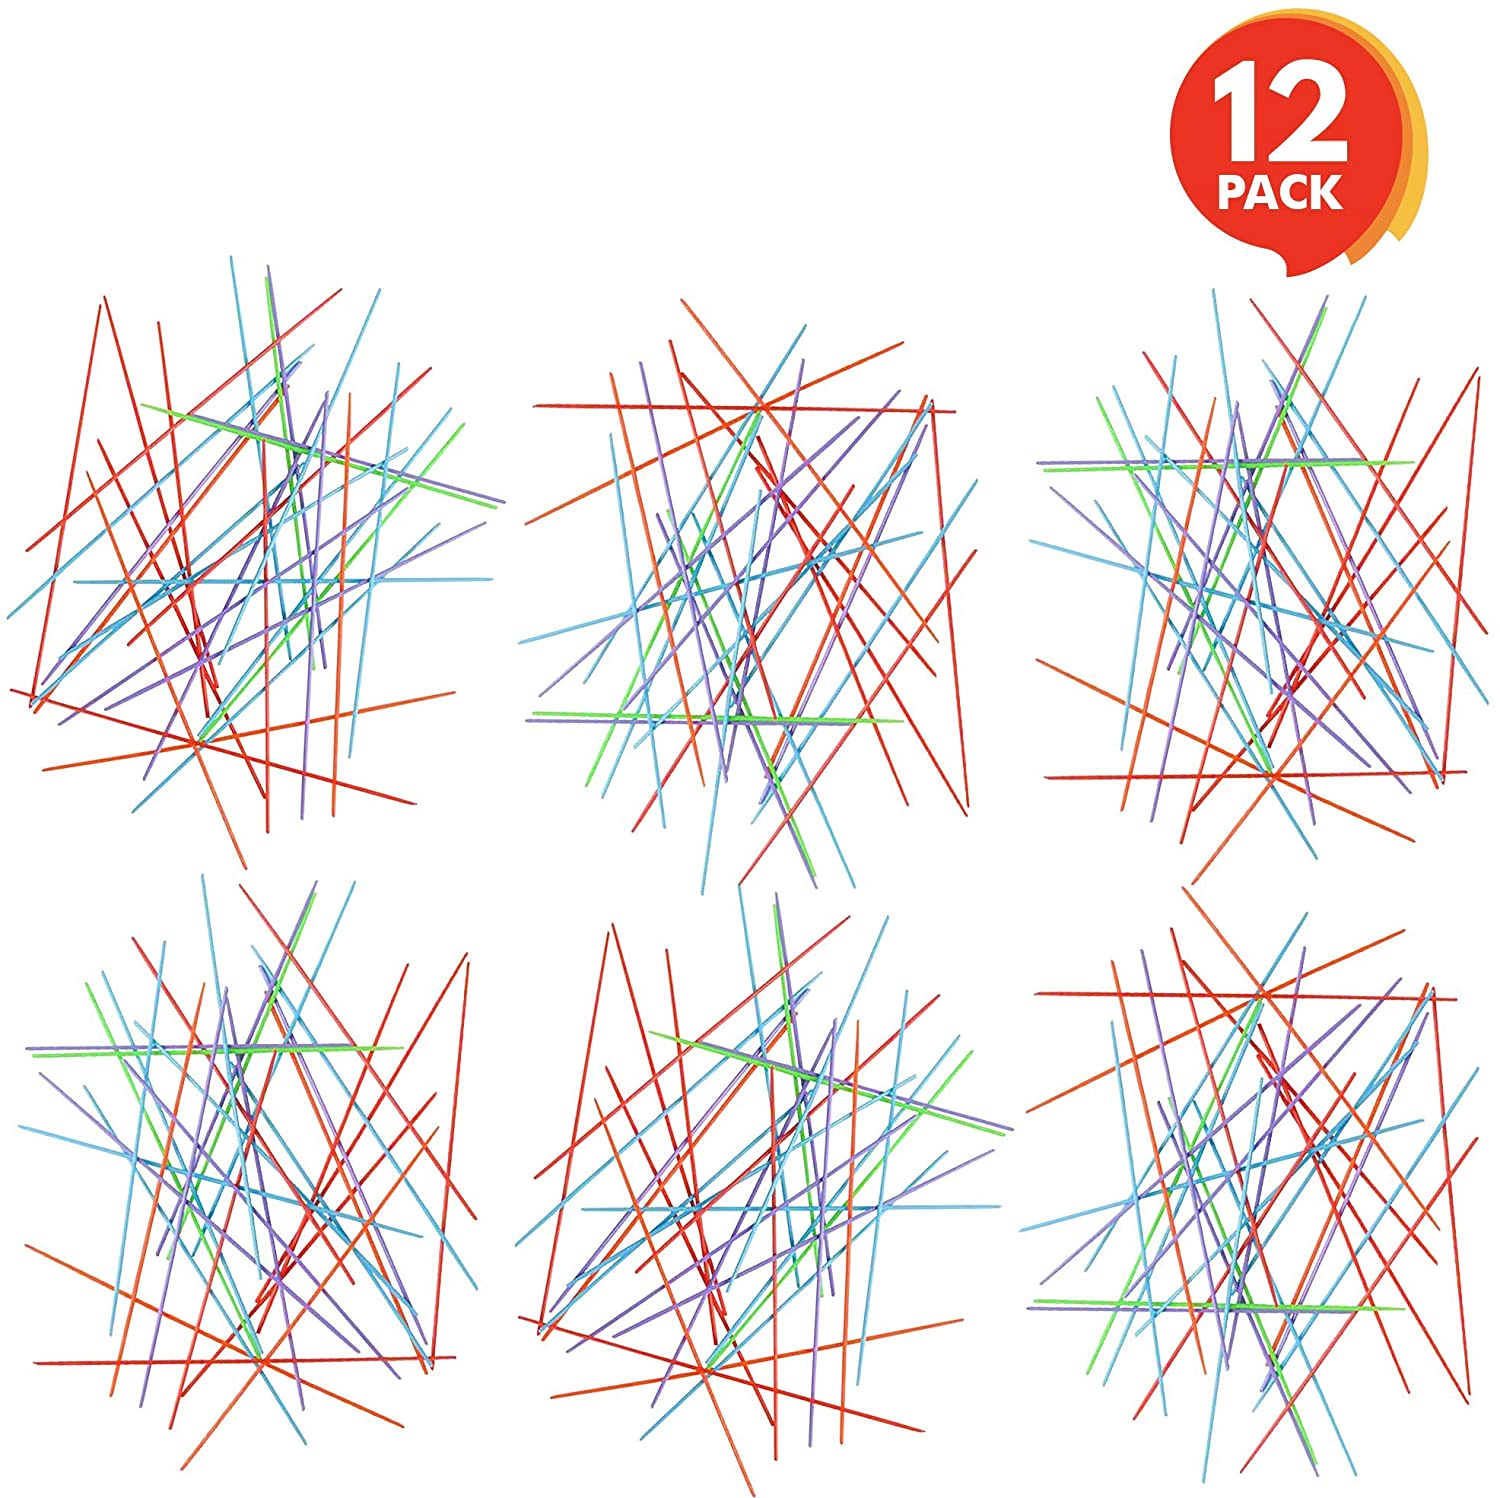 Gamie Plastic Pick-up Stick Sets - Pack of 12 - Each Set Separately Packed with Instructions - Great School Carnival Prize and Party Favors for Boys and Girls